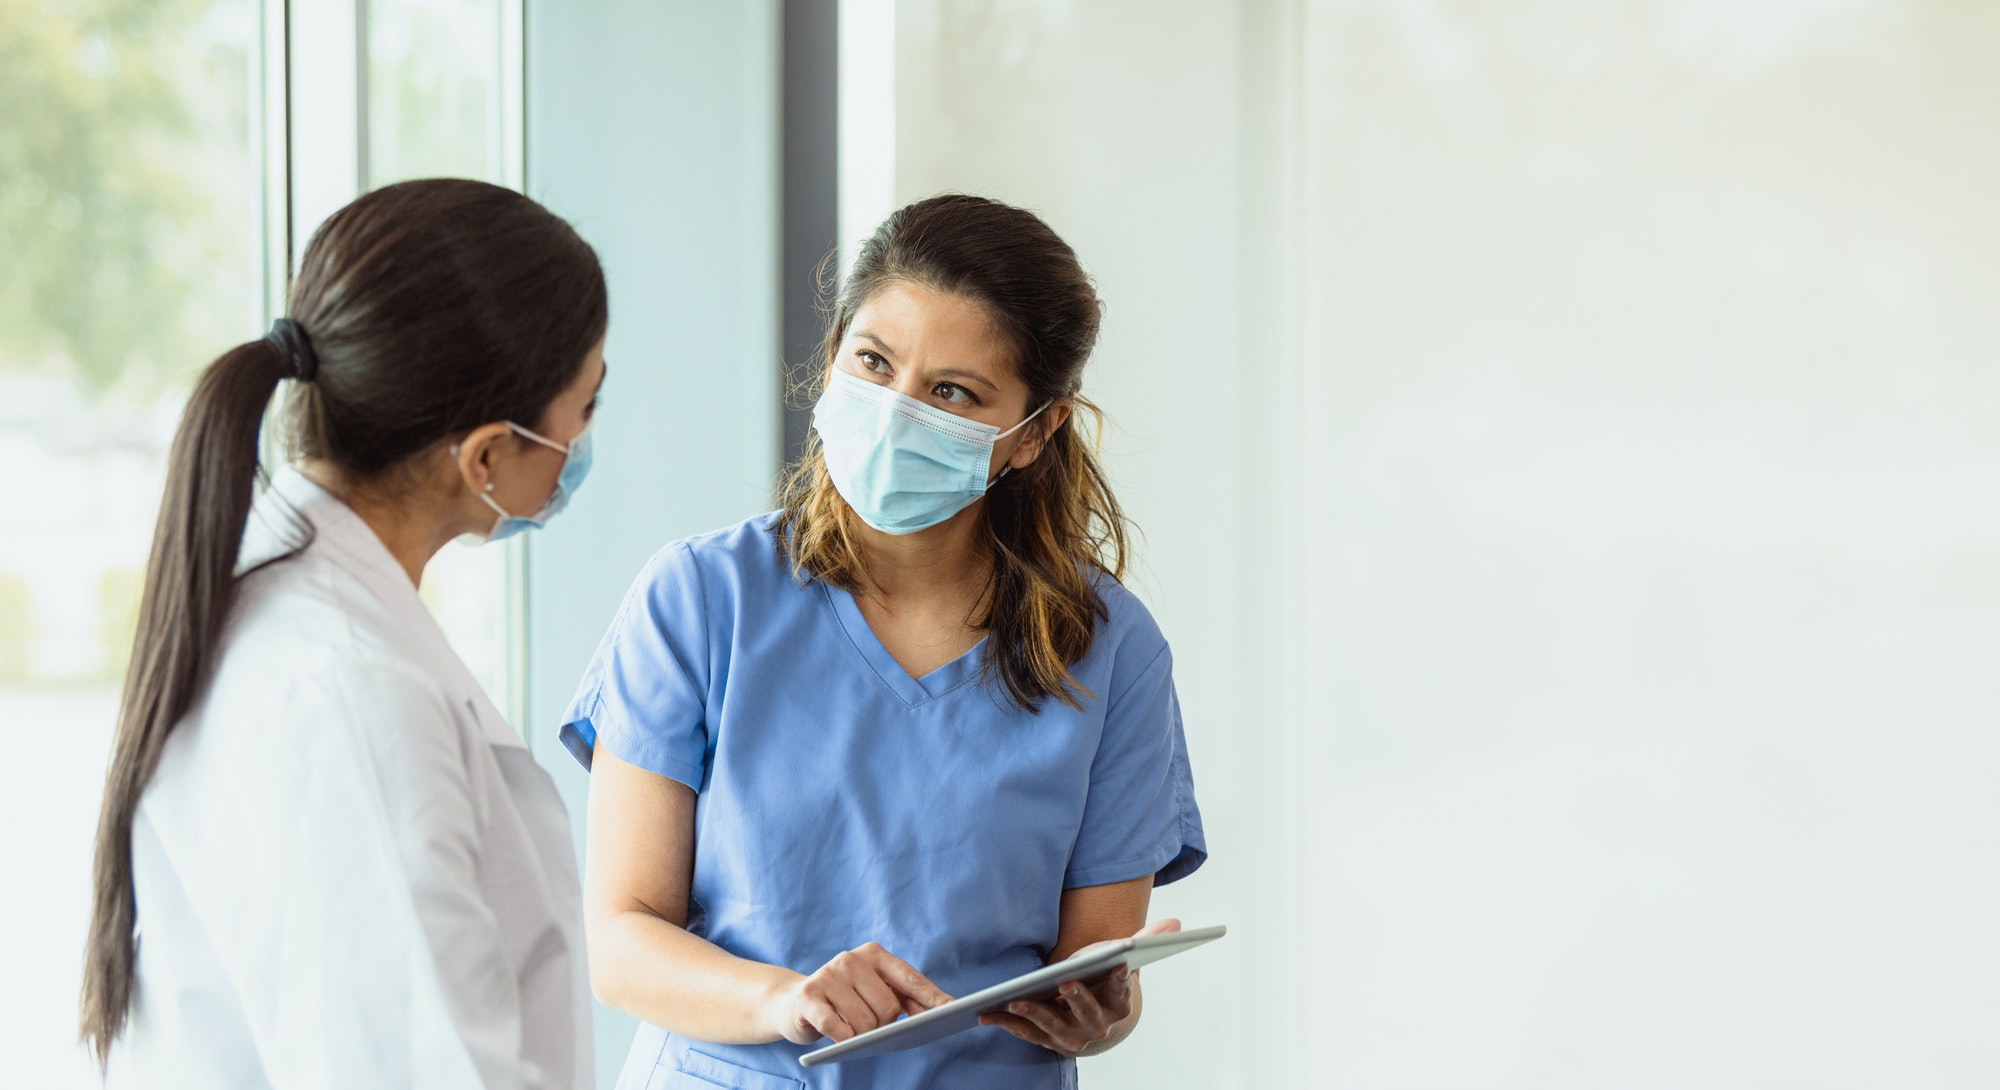 A female healthcare professional discusses a patient's case with a female colleague. She is pointing...